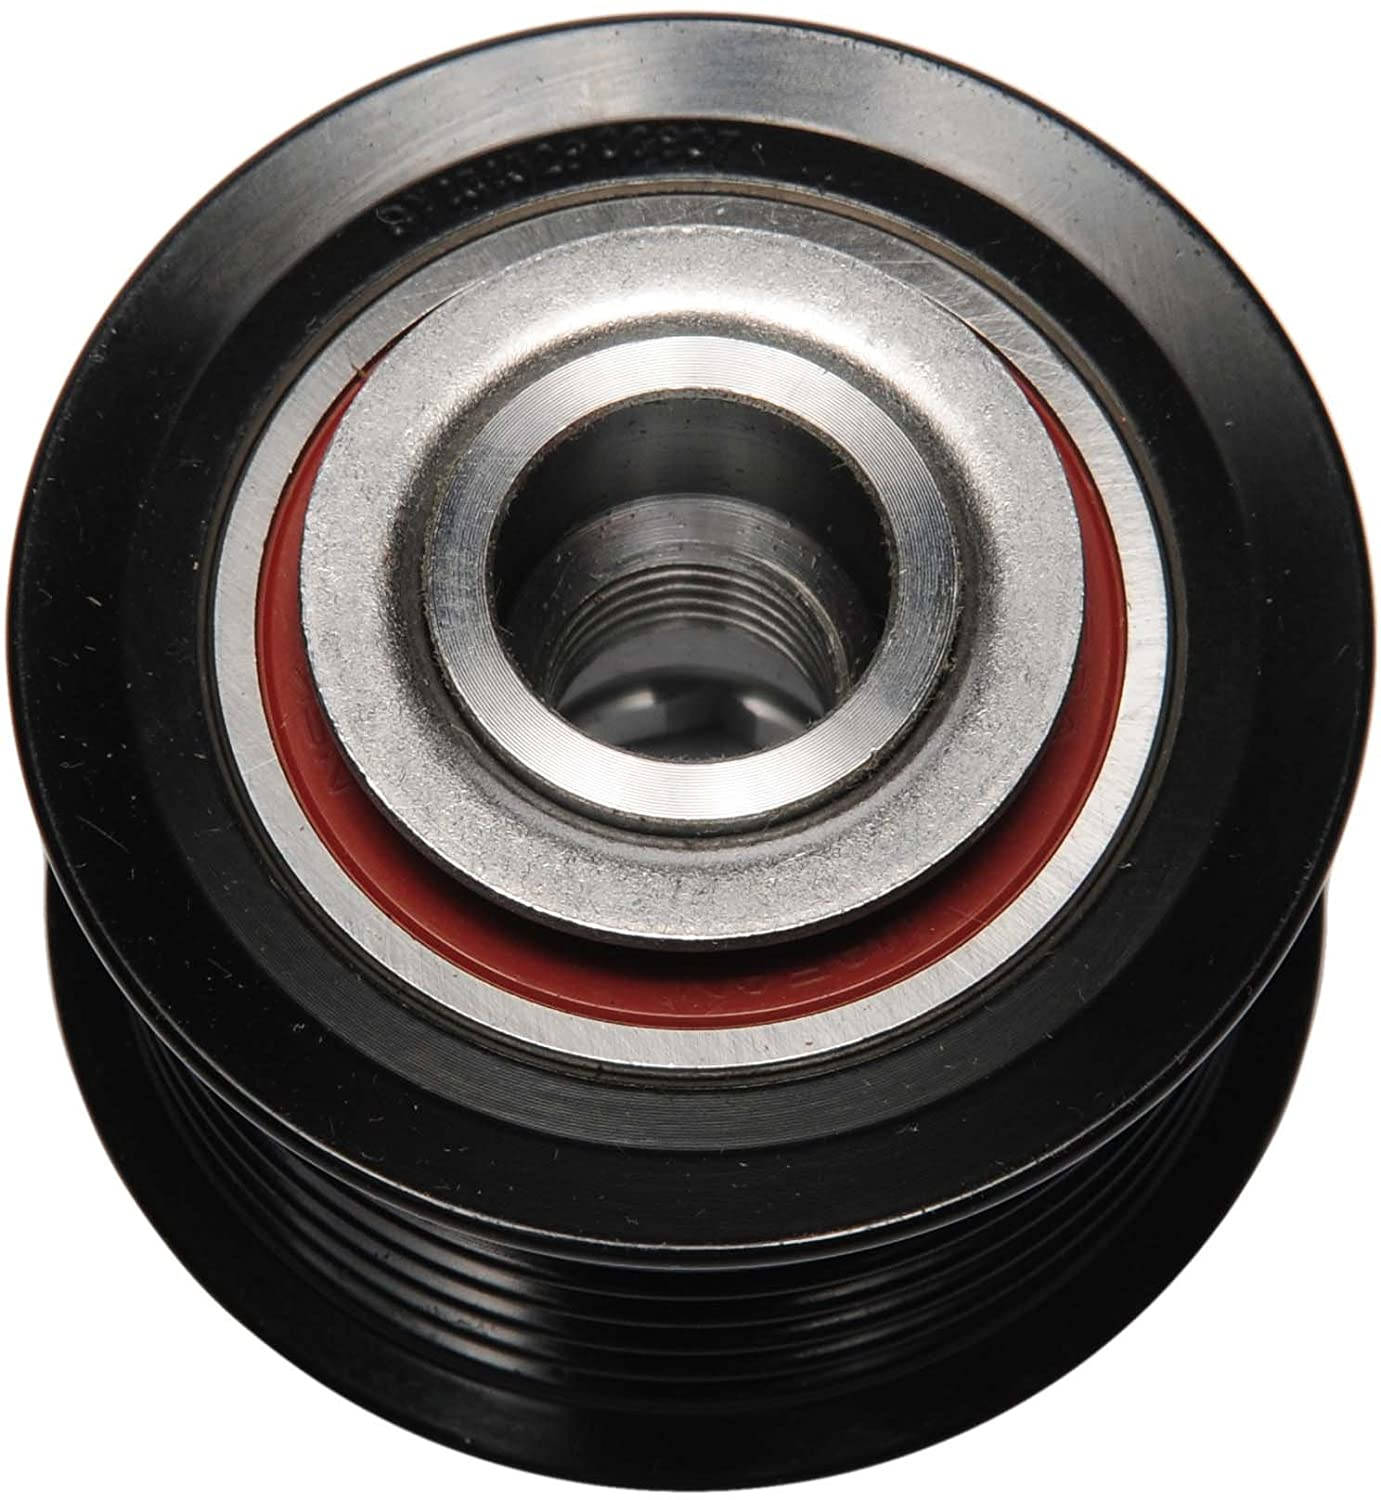 Continental Elite 49916 Overrunning Alternator Decoupler Pulley Continental ContiTech